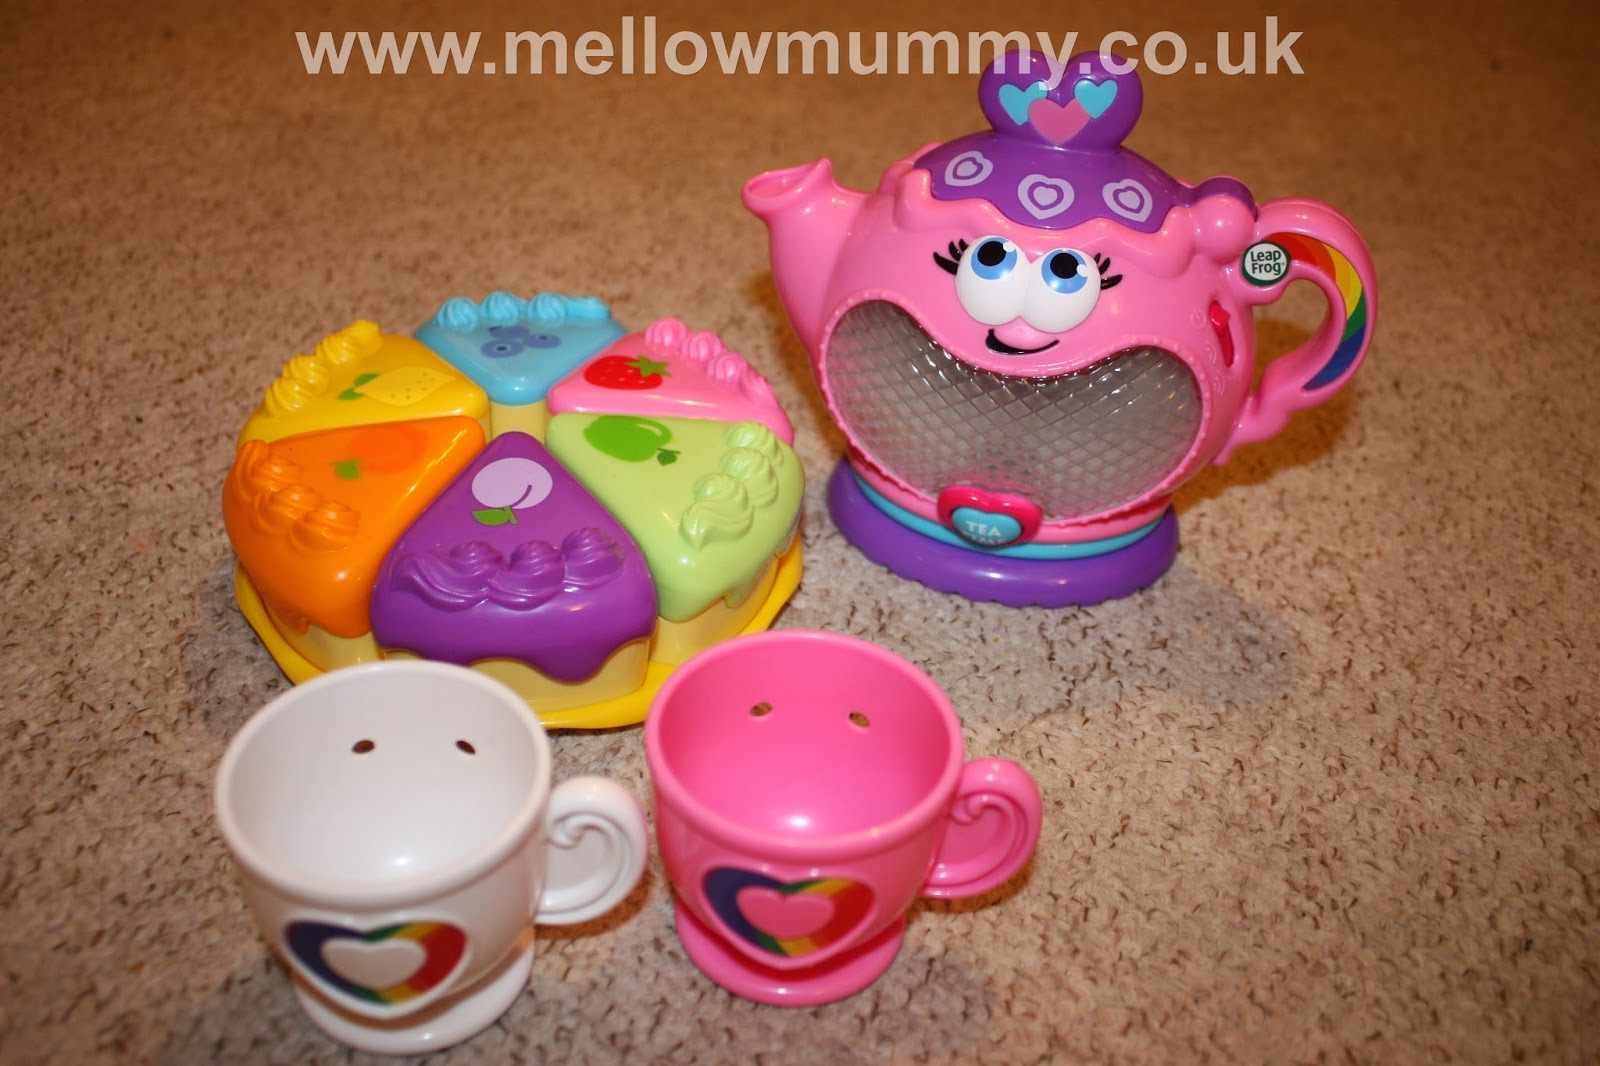 659c8efce795 Mellow Mummy: Leapfrog Musical Rainbow Tea Party Review : Taking ...